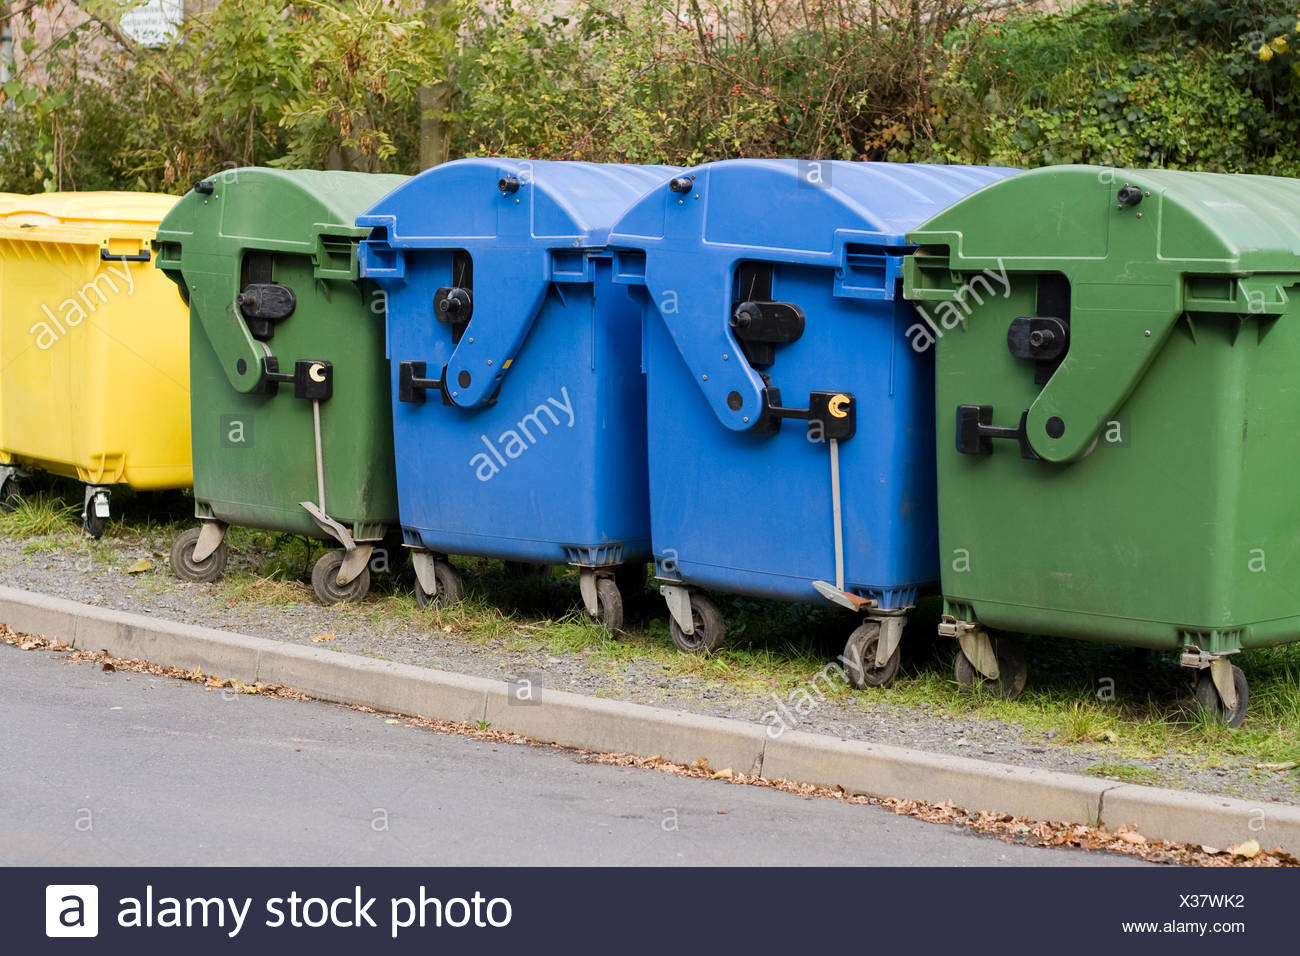 Waste containers - Stock Image